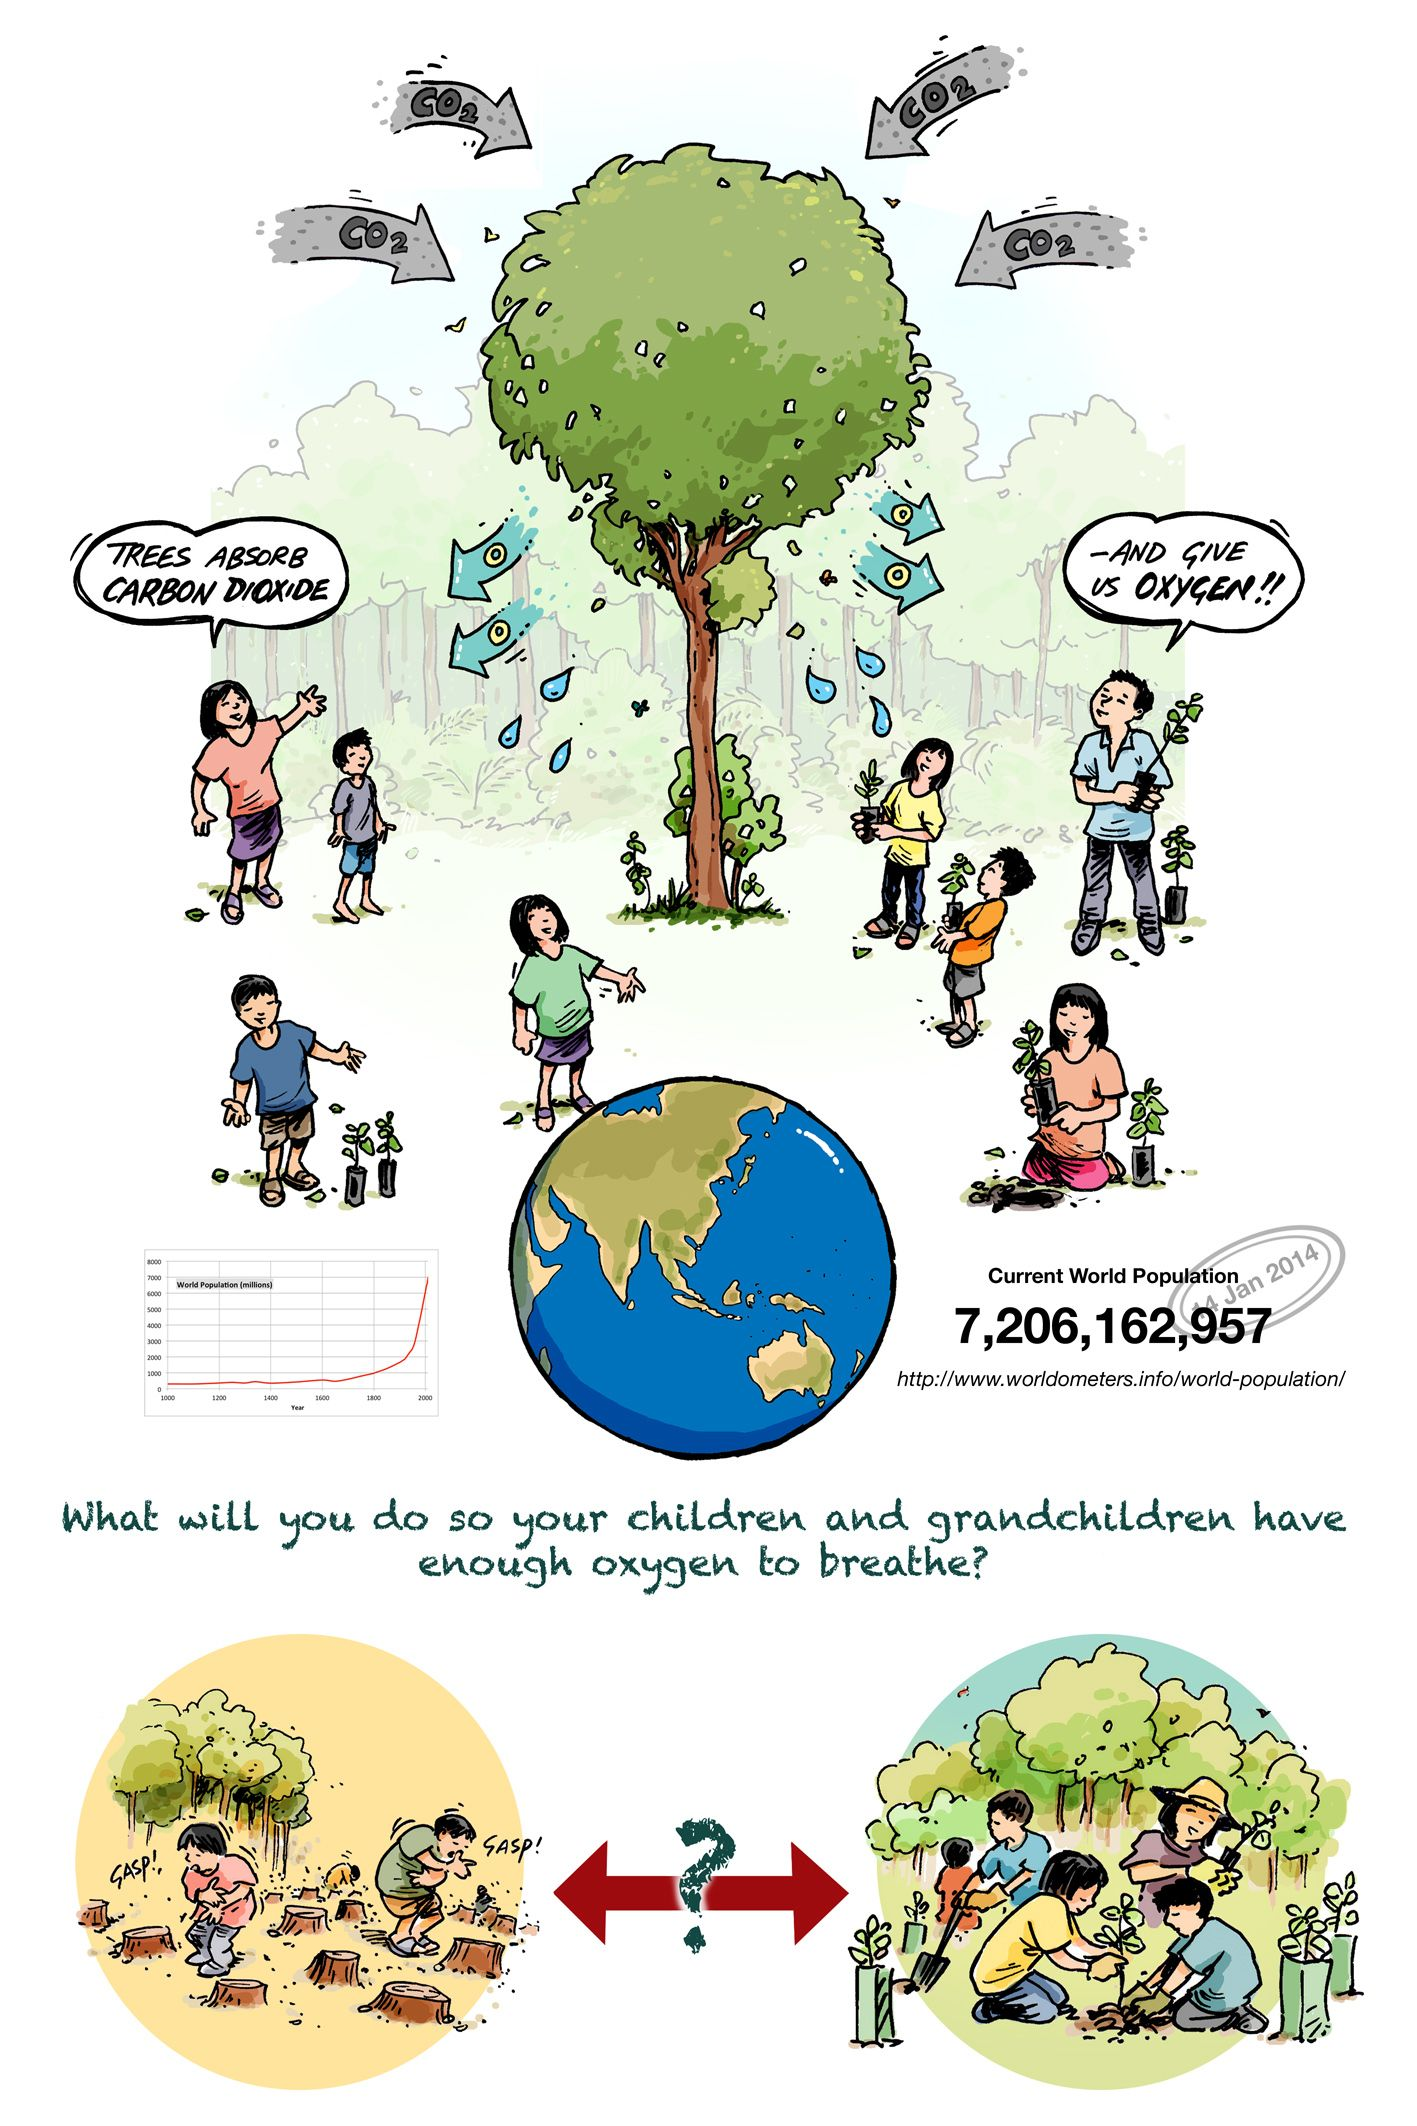 hight resolution of support our goal www aridzoneafforestation org aza aridzoneafforestation safetree afforestation plant trees forests saveearth saveplanet activism